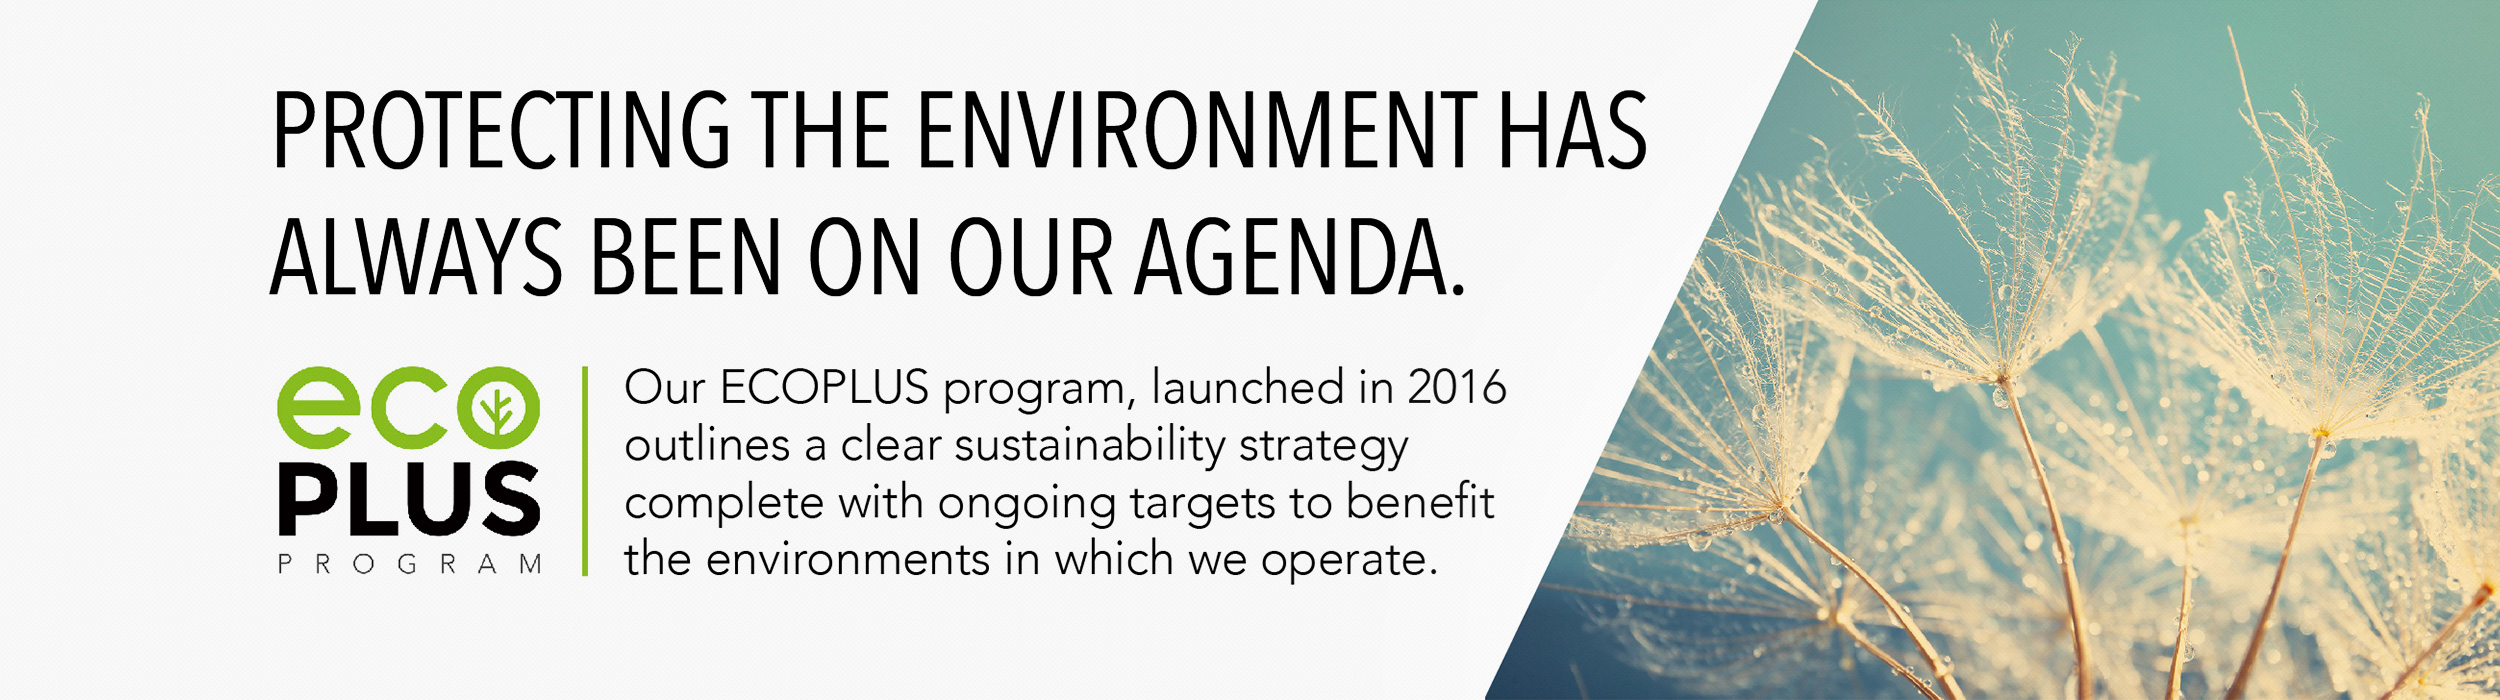 Protecting the environment has always been on our agenda